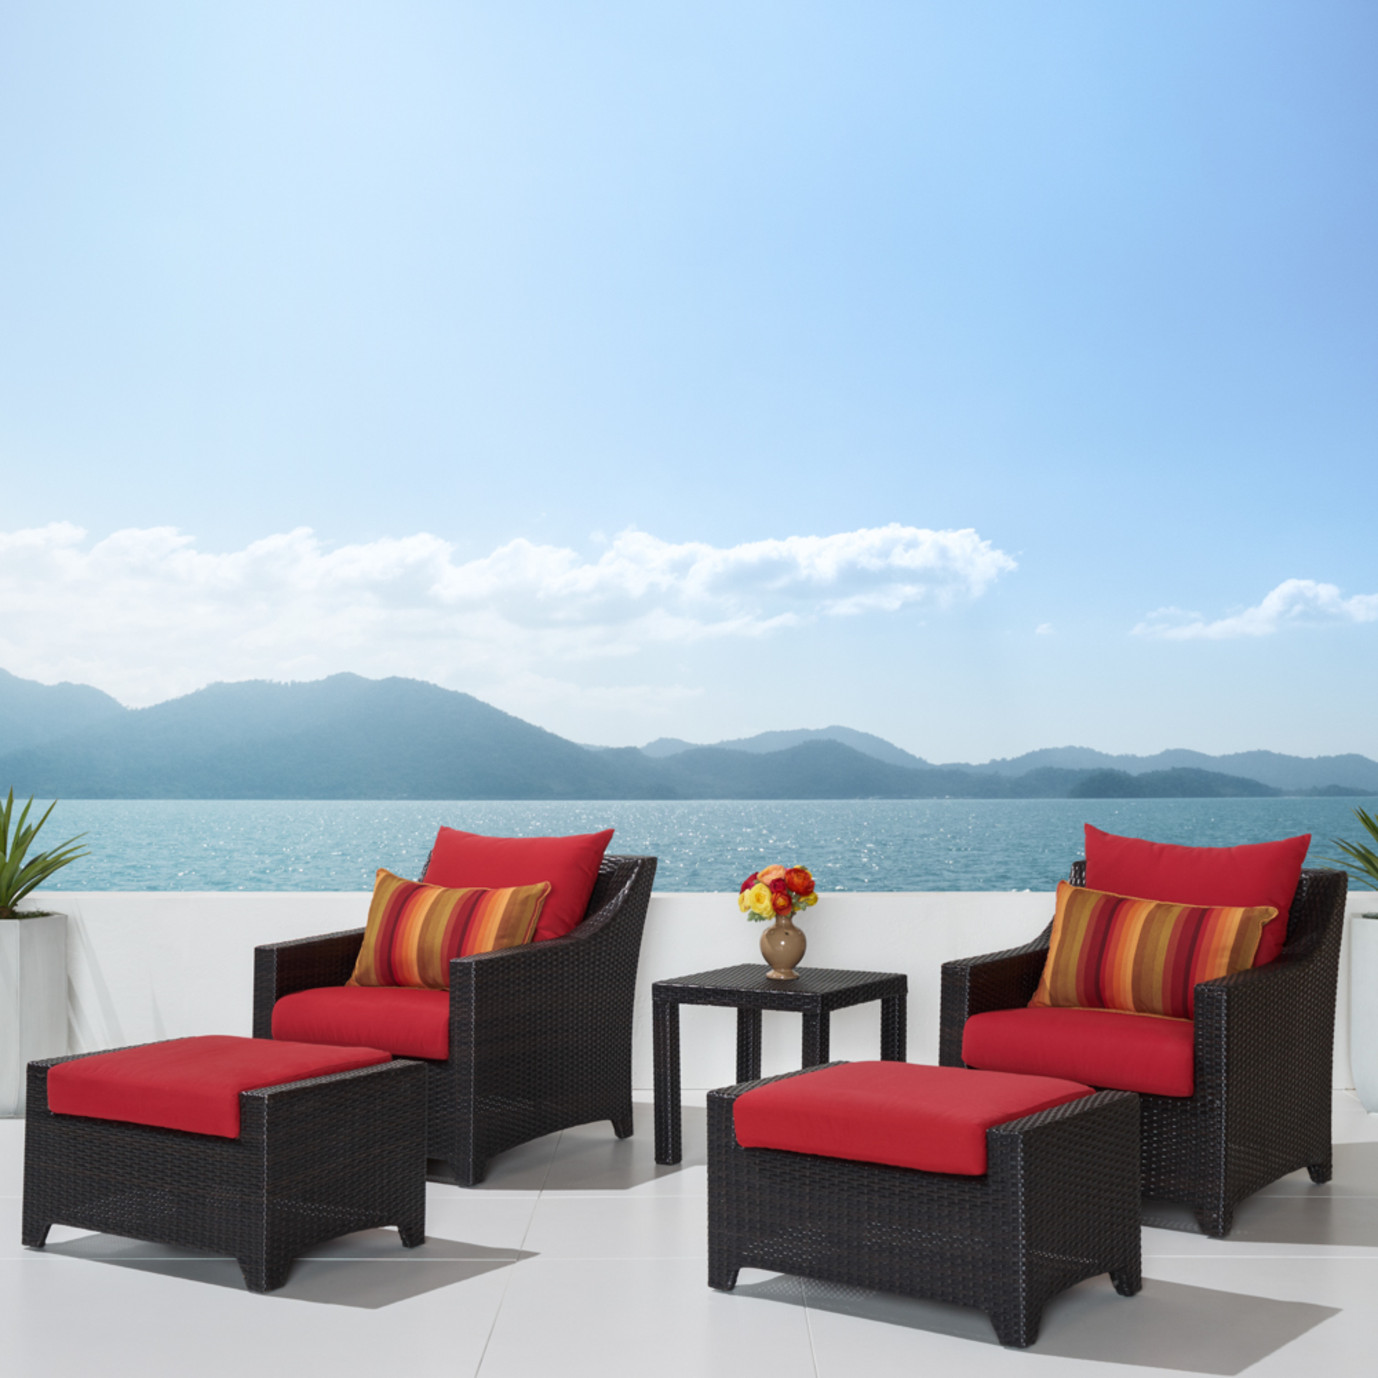 Deco™ 5pc Club Chair & Ottoman Set - Sunset Red